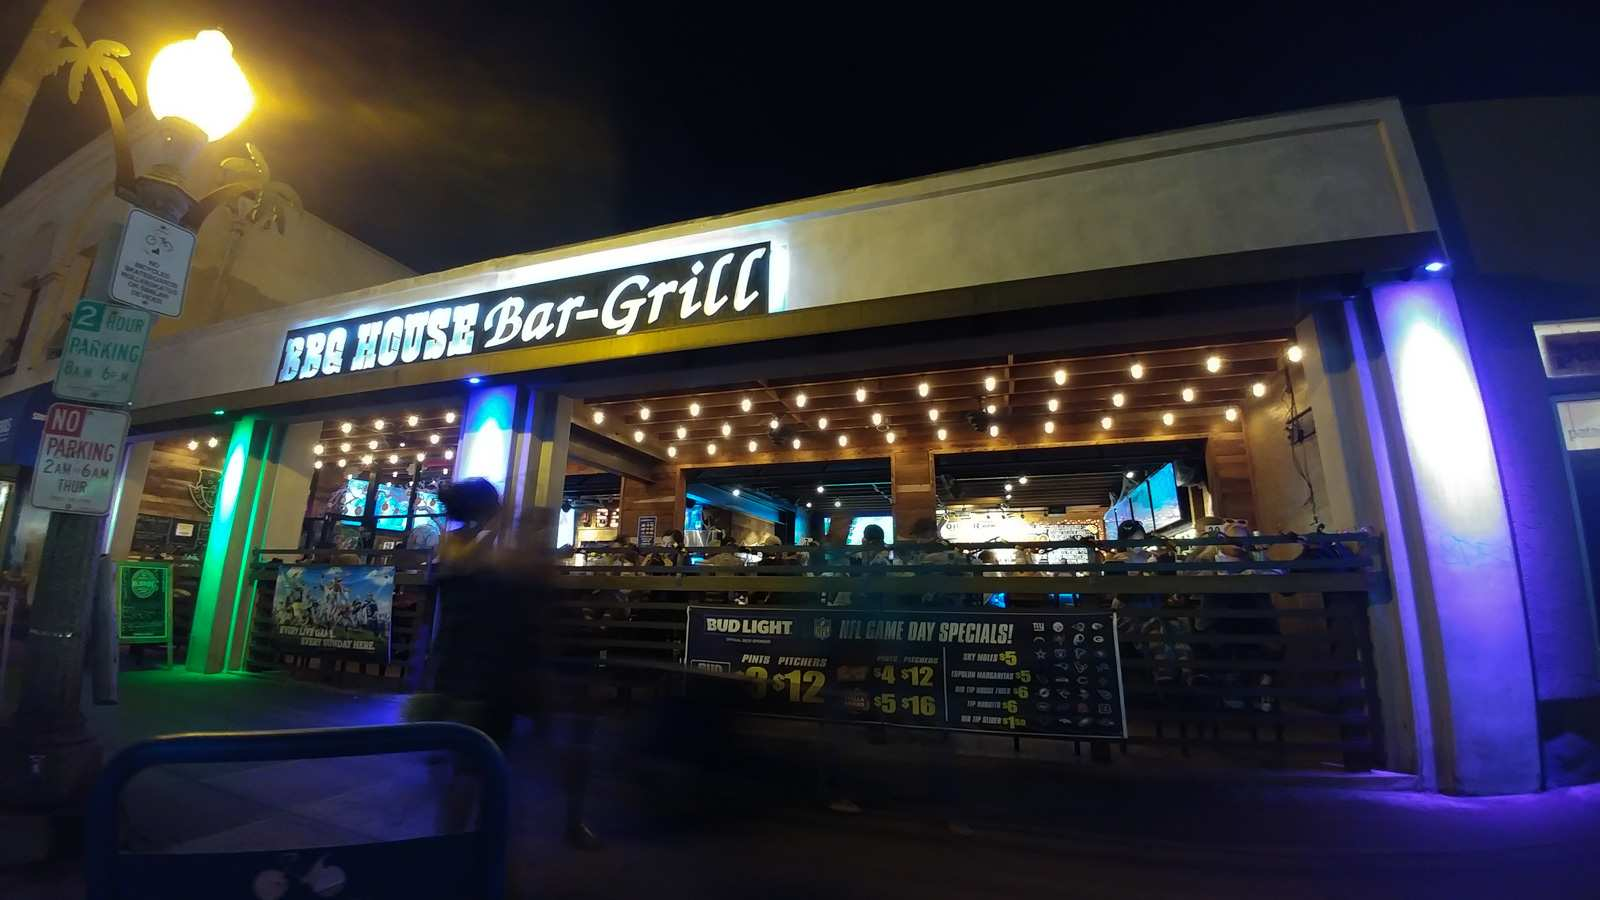 BBQ House Bar-Grill San Diego Ocean Beach